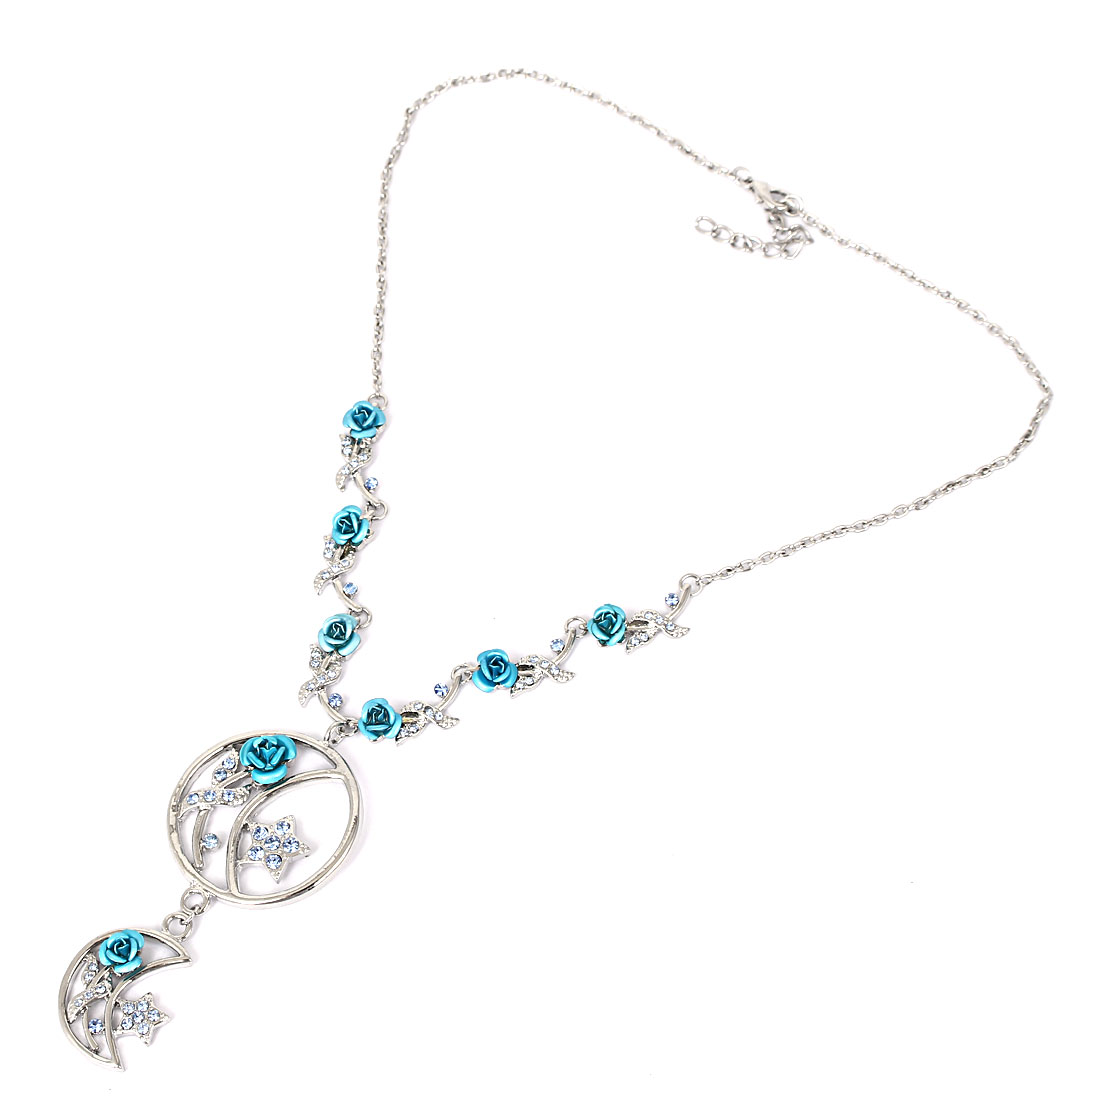 Lady Fashion Jewelry Moon Star Rose Flower Crystal Pendant Necklace Light Blue